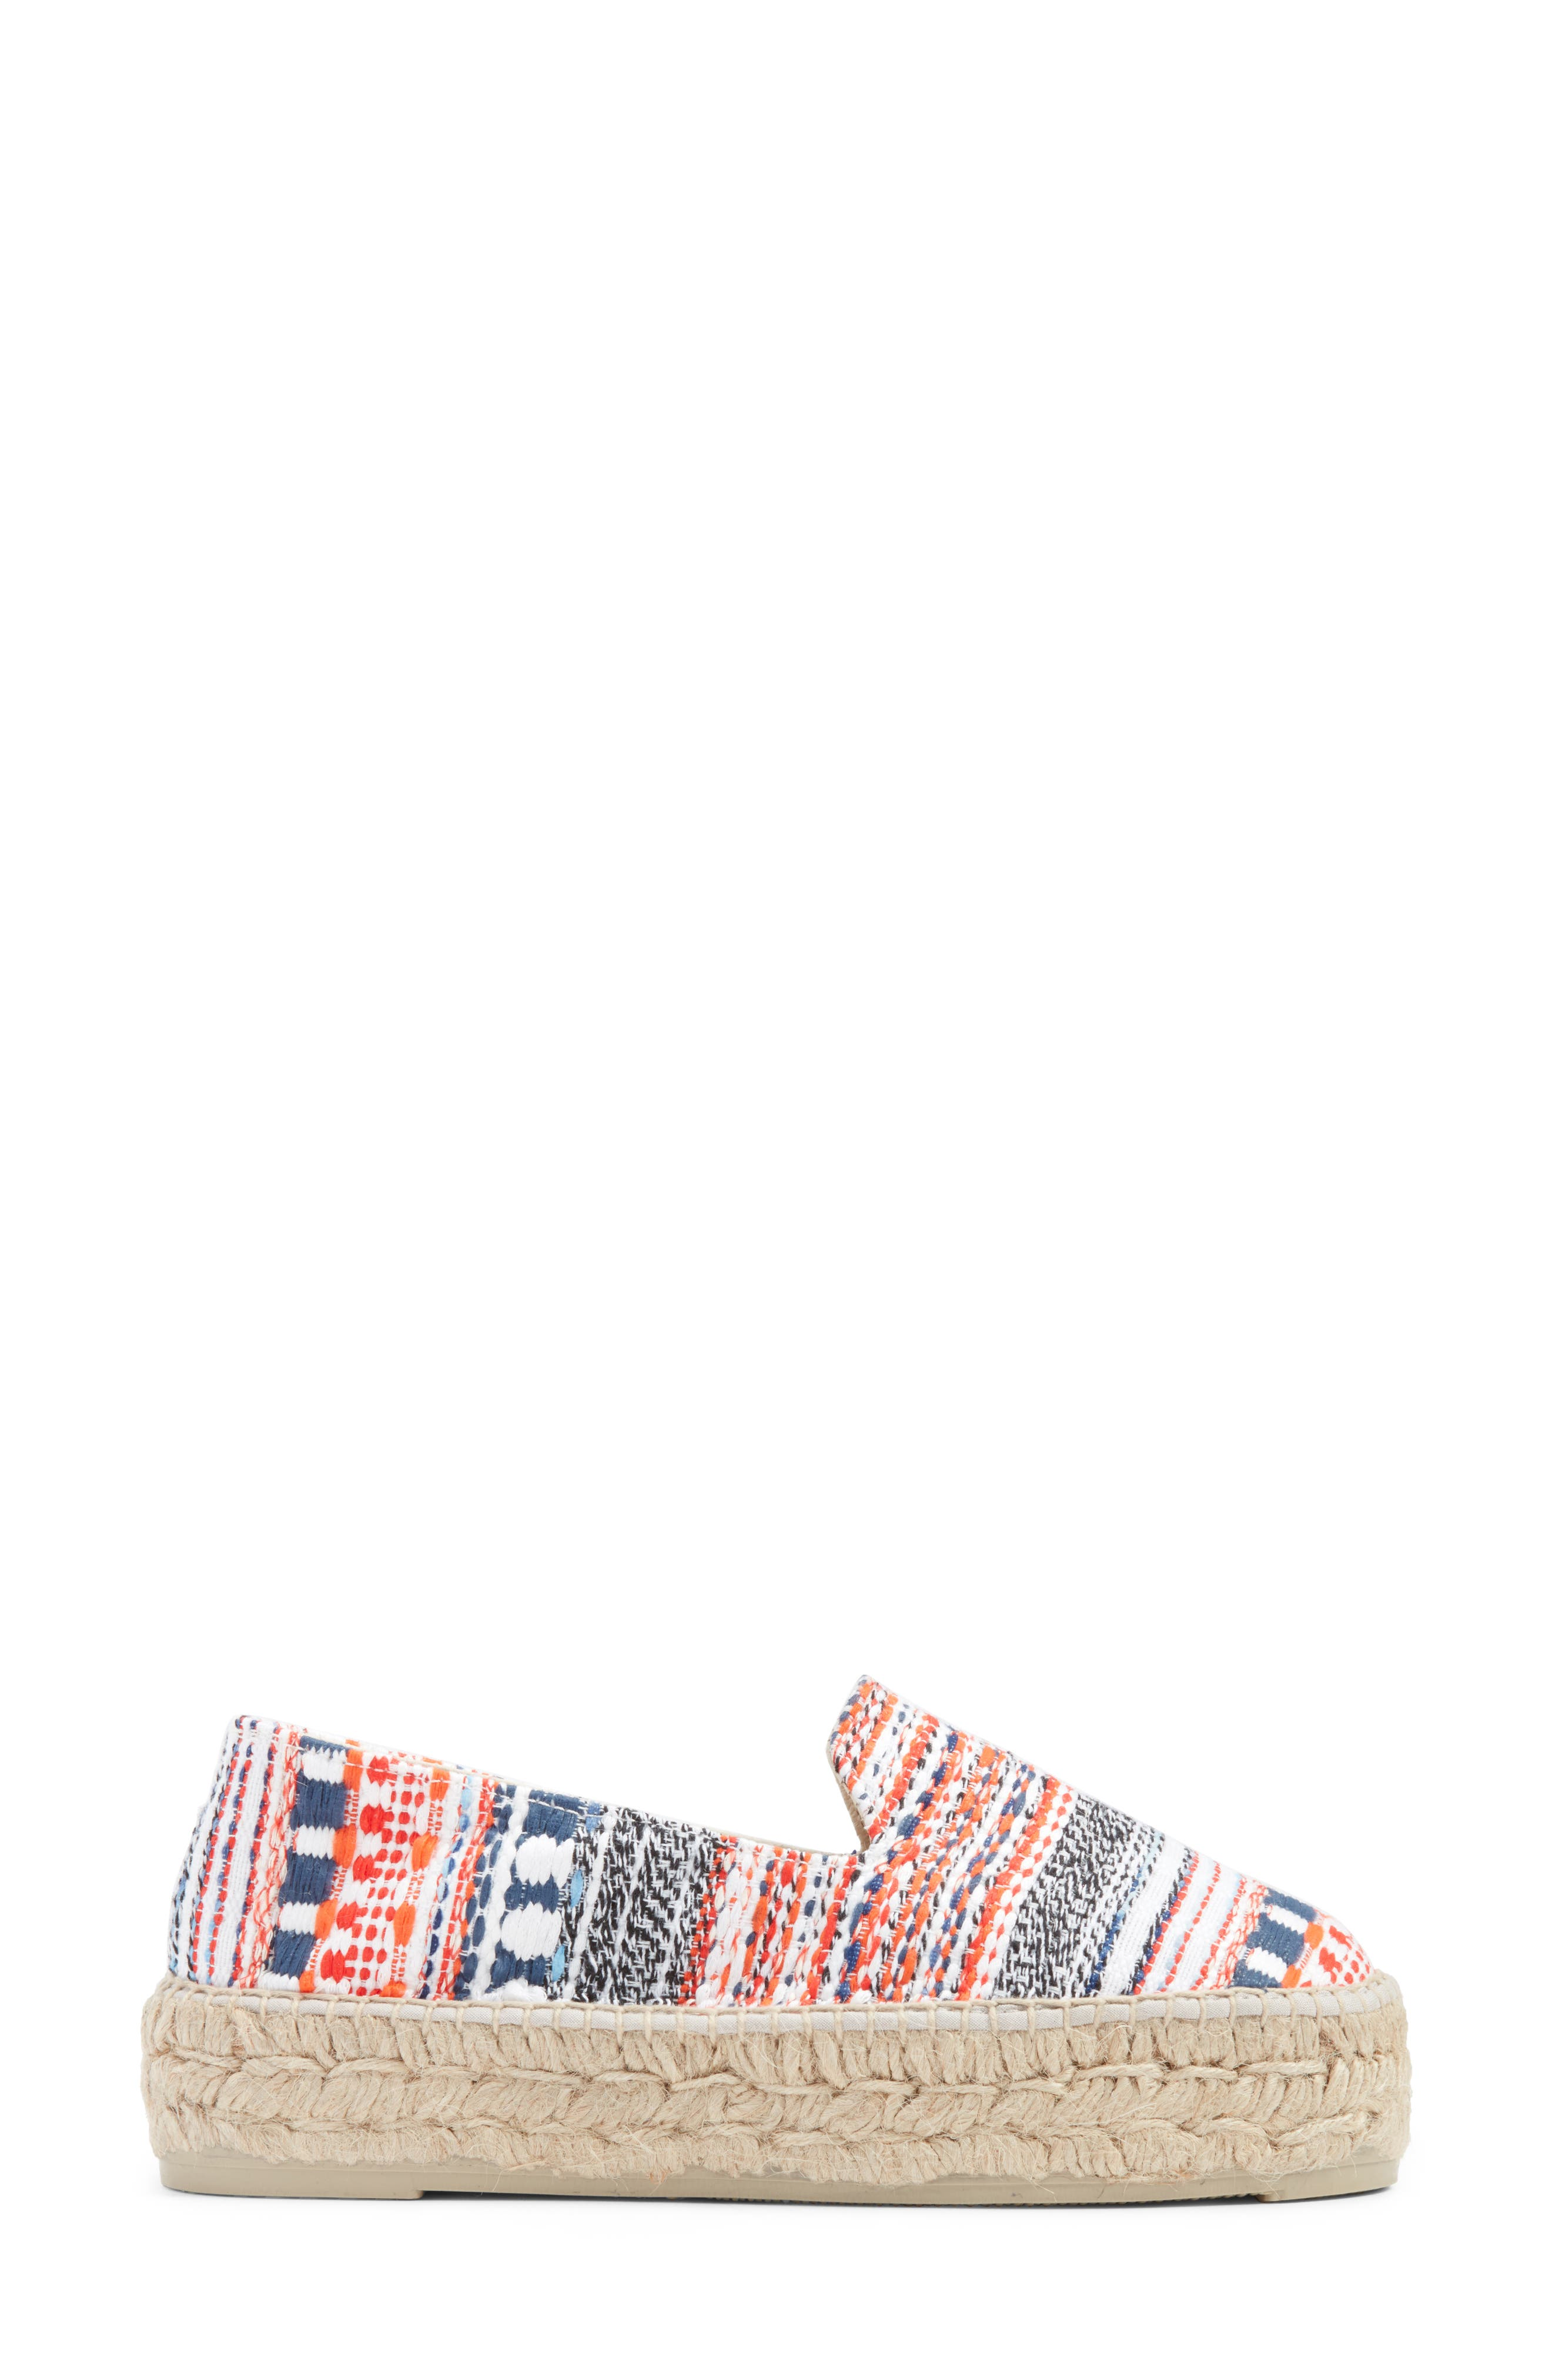 MANEBÍ Yucatan Platform Espadrille Slip-On,                             Alternate thumbnail 3, color,                             420